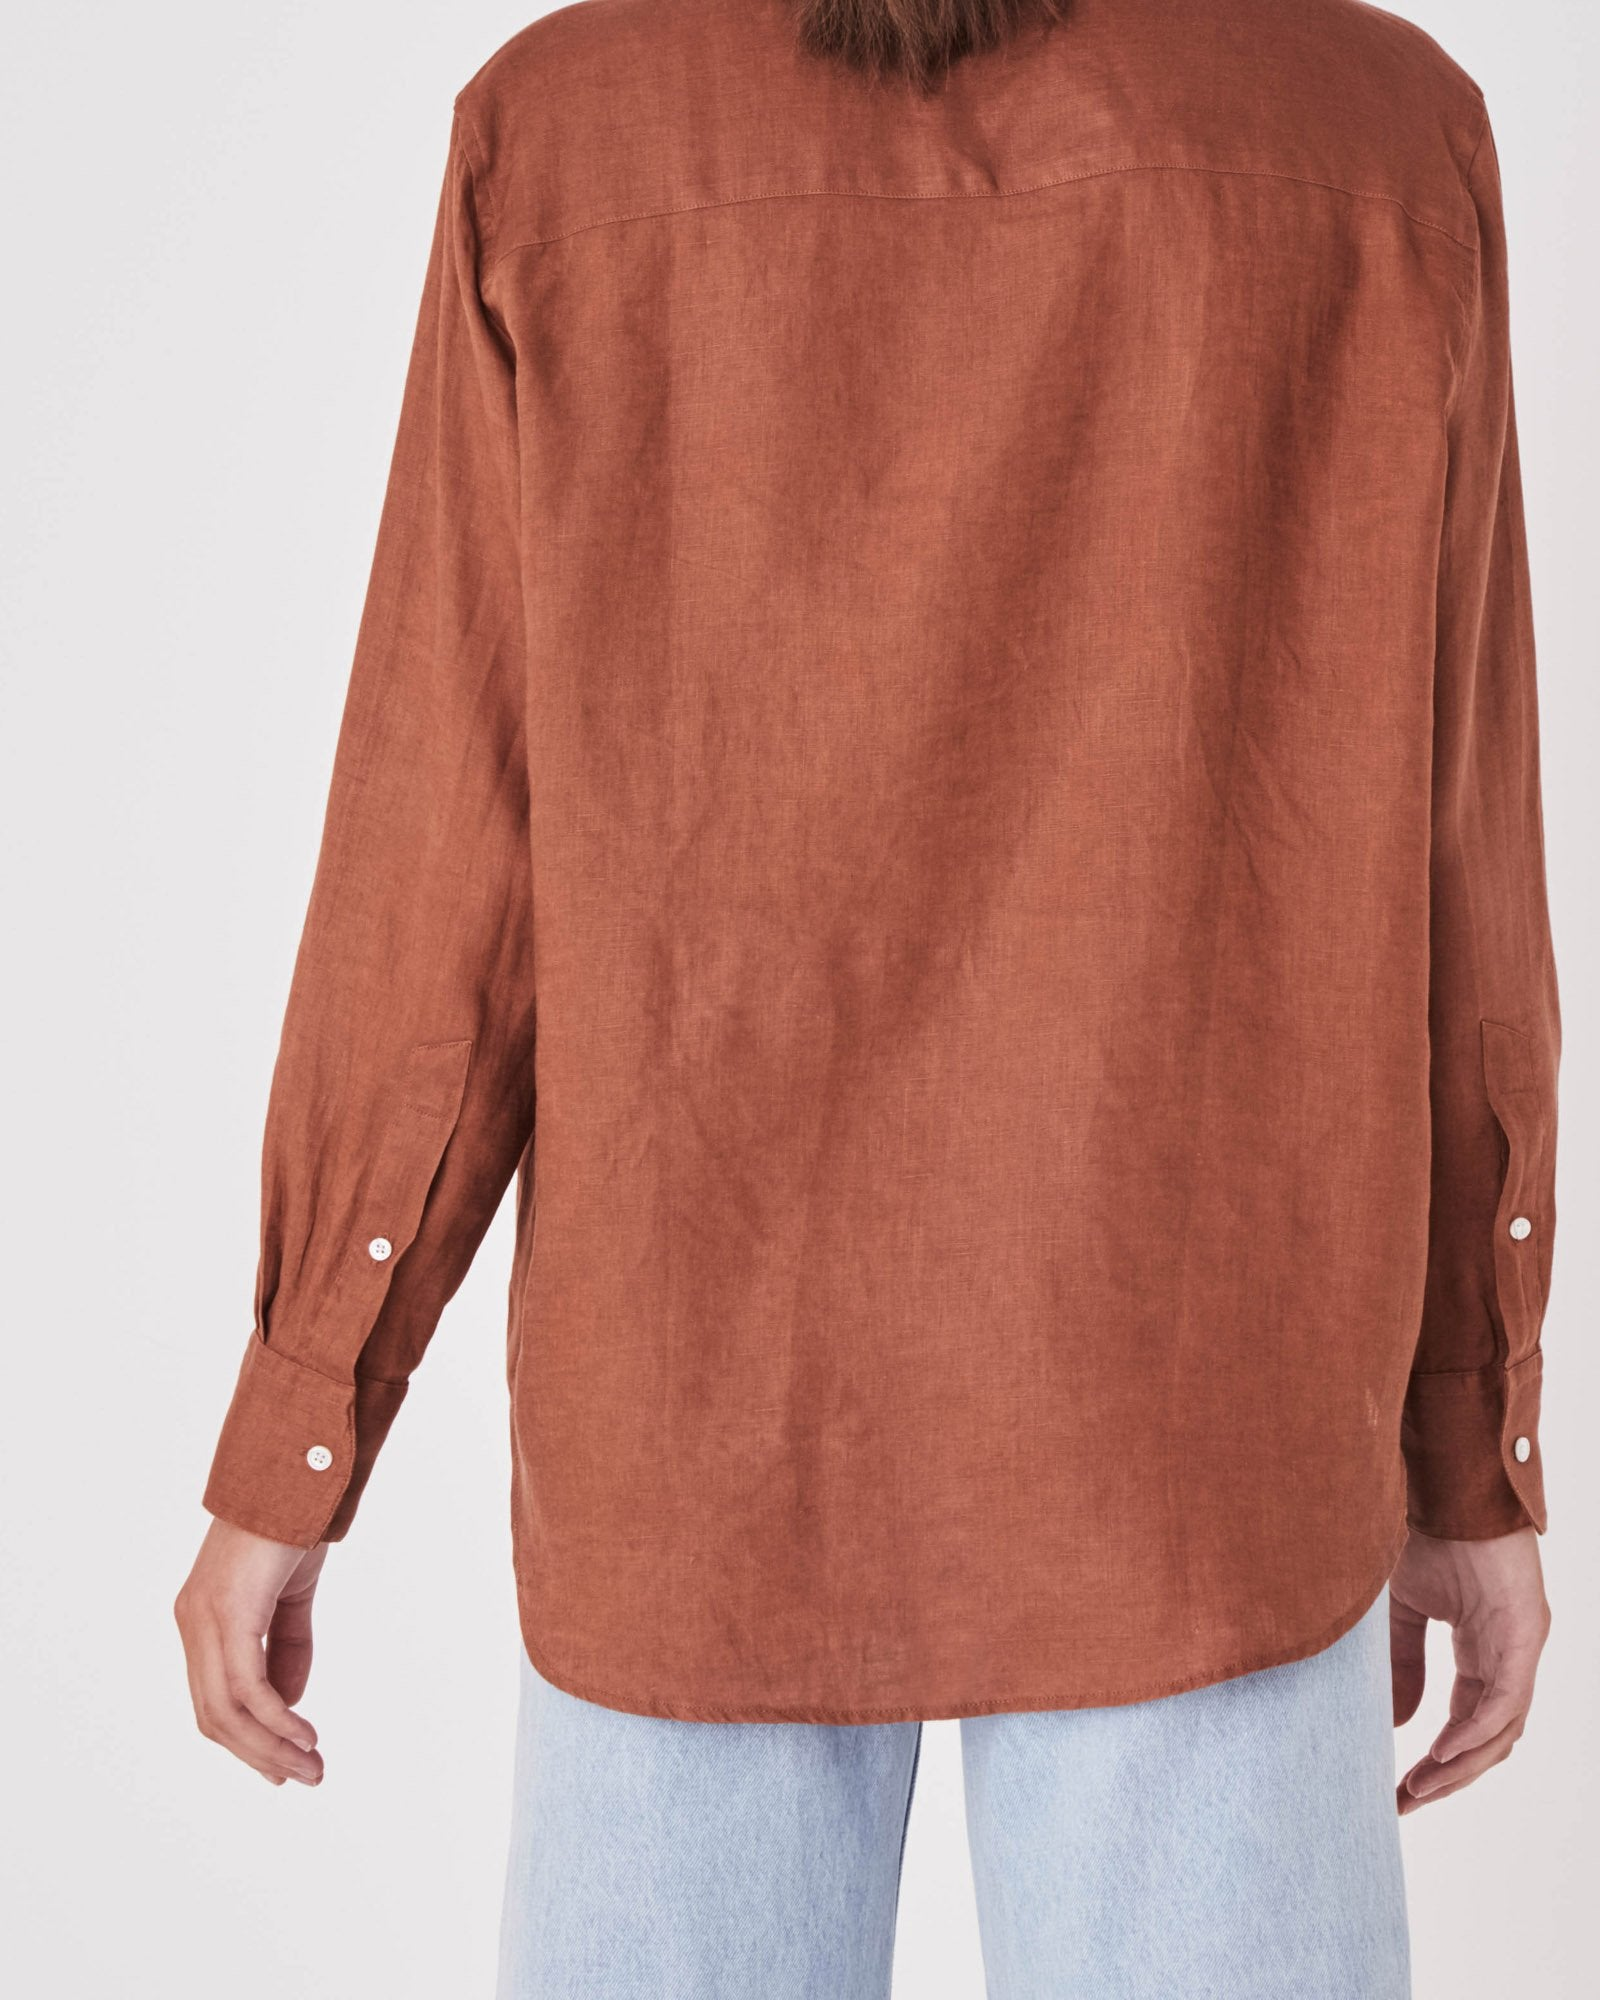 Xander Long Sleeve Linen Shirt - Terracotta